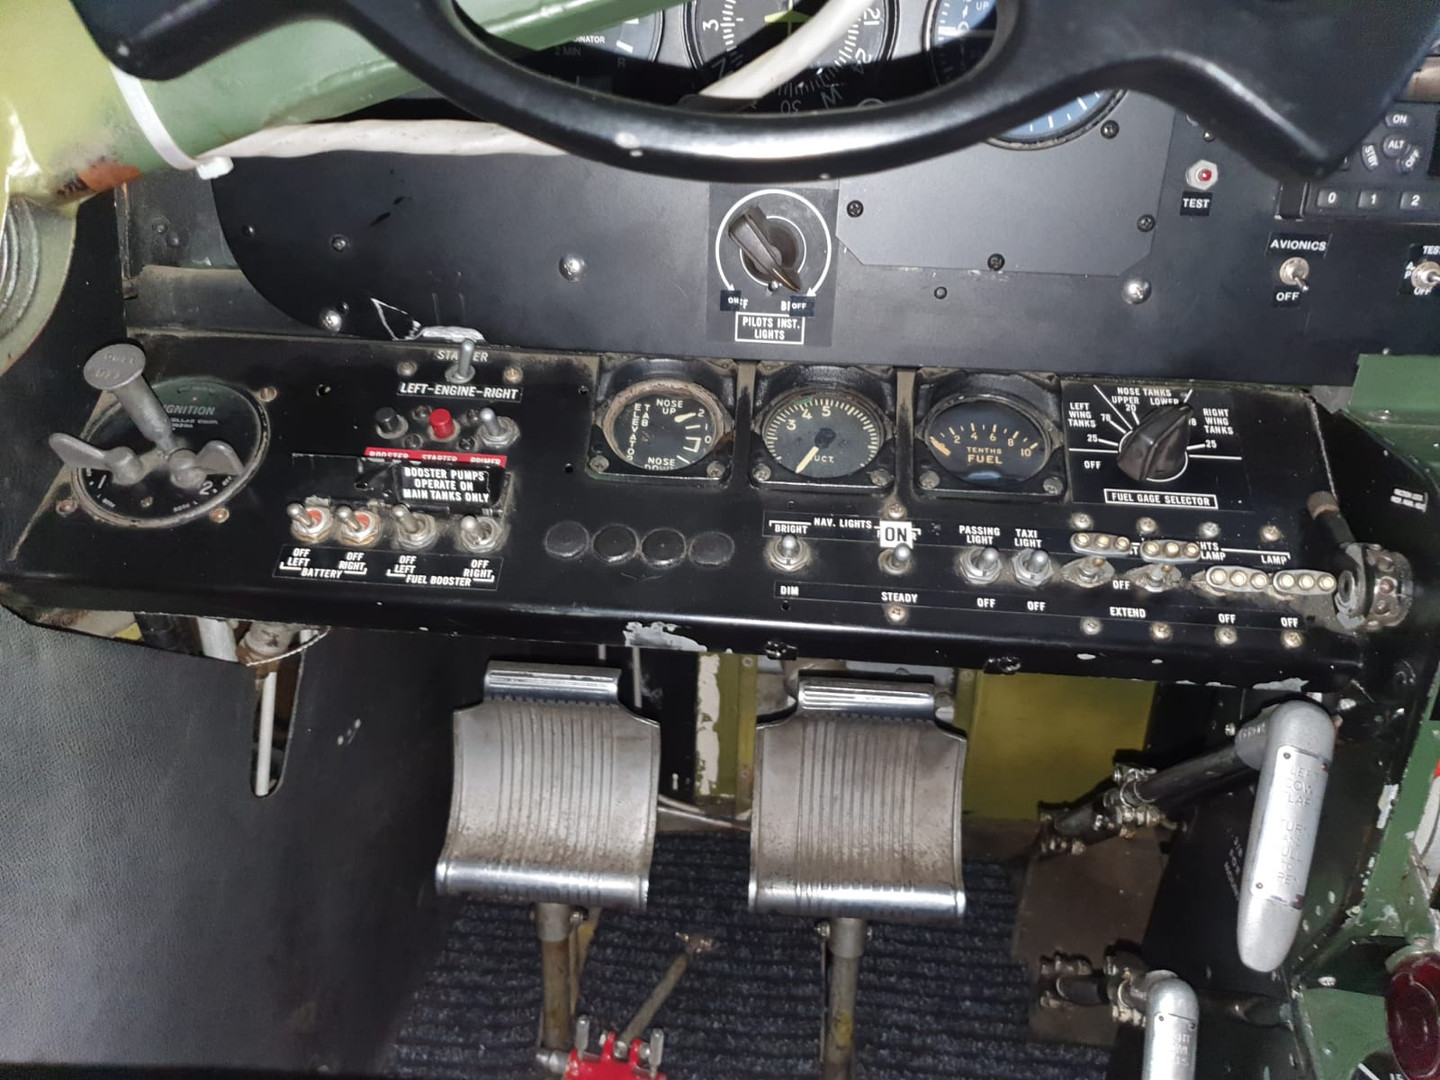 LH lower part of instrument panel